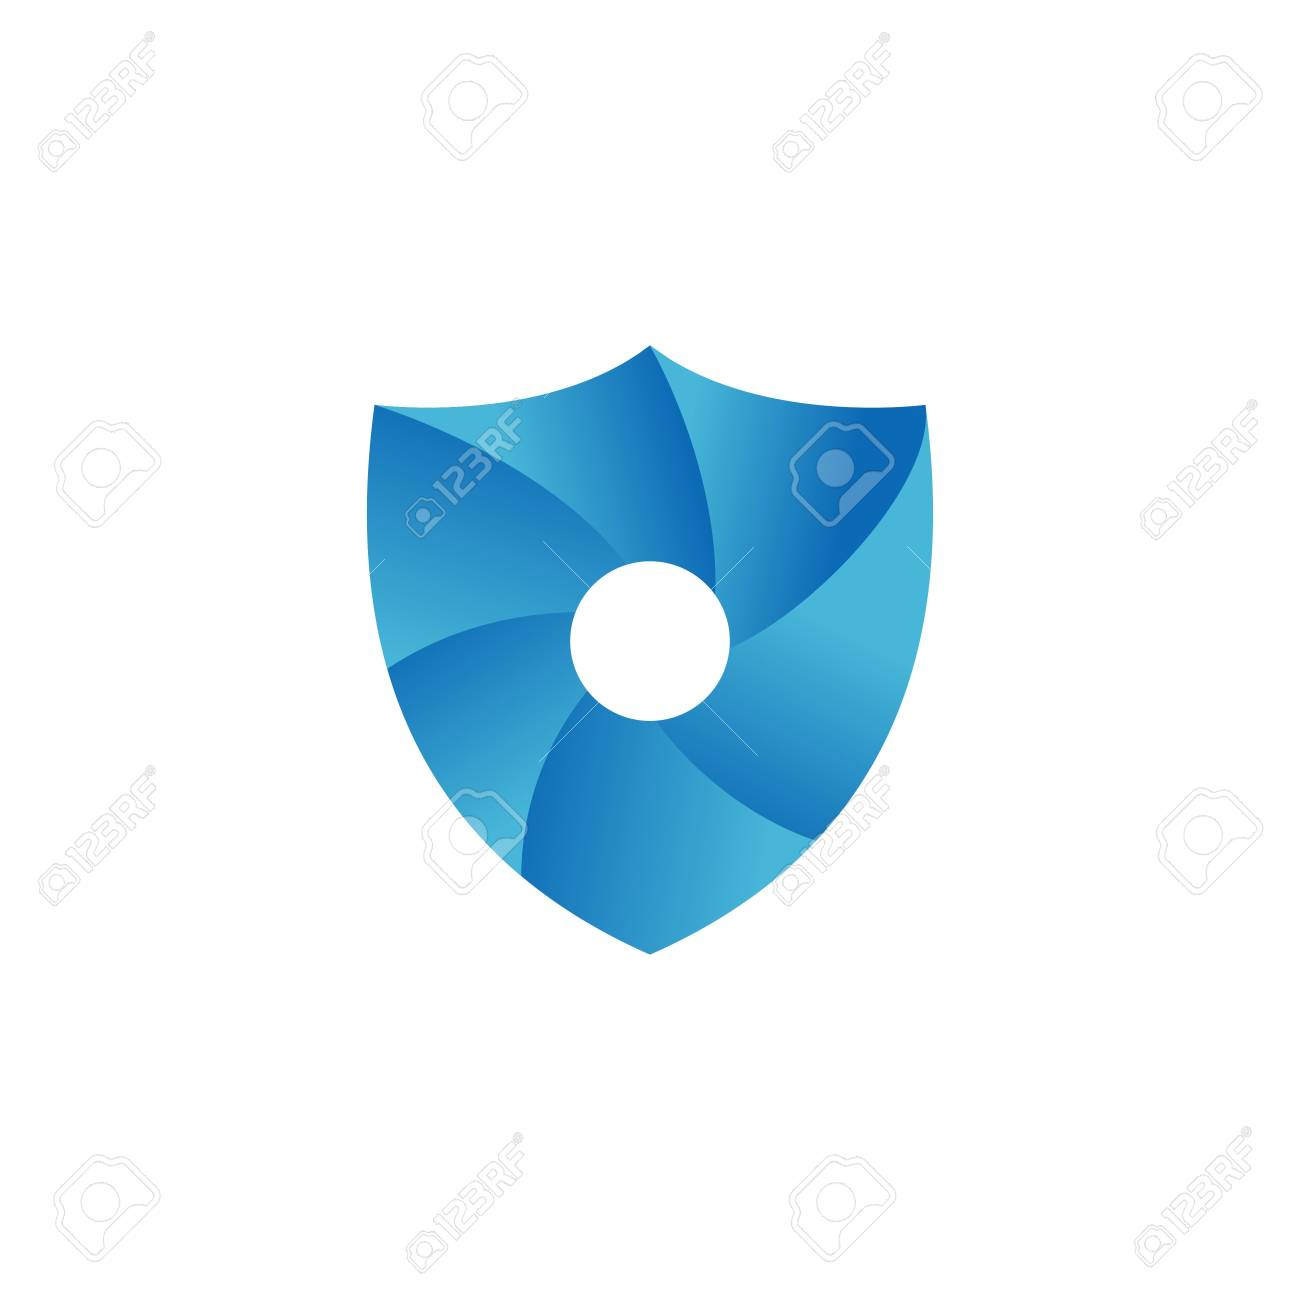 Shield Template Stock Photo, Picture And Royalty Free Image. Image ...